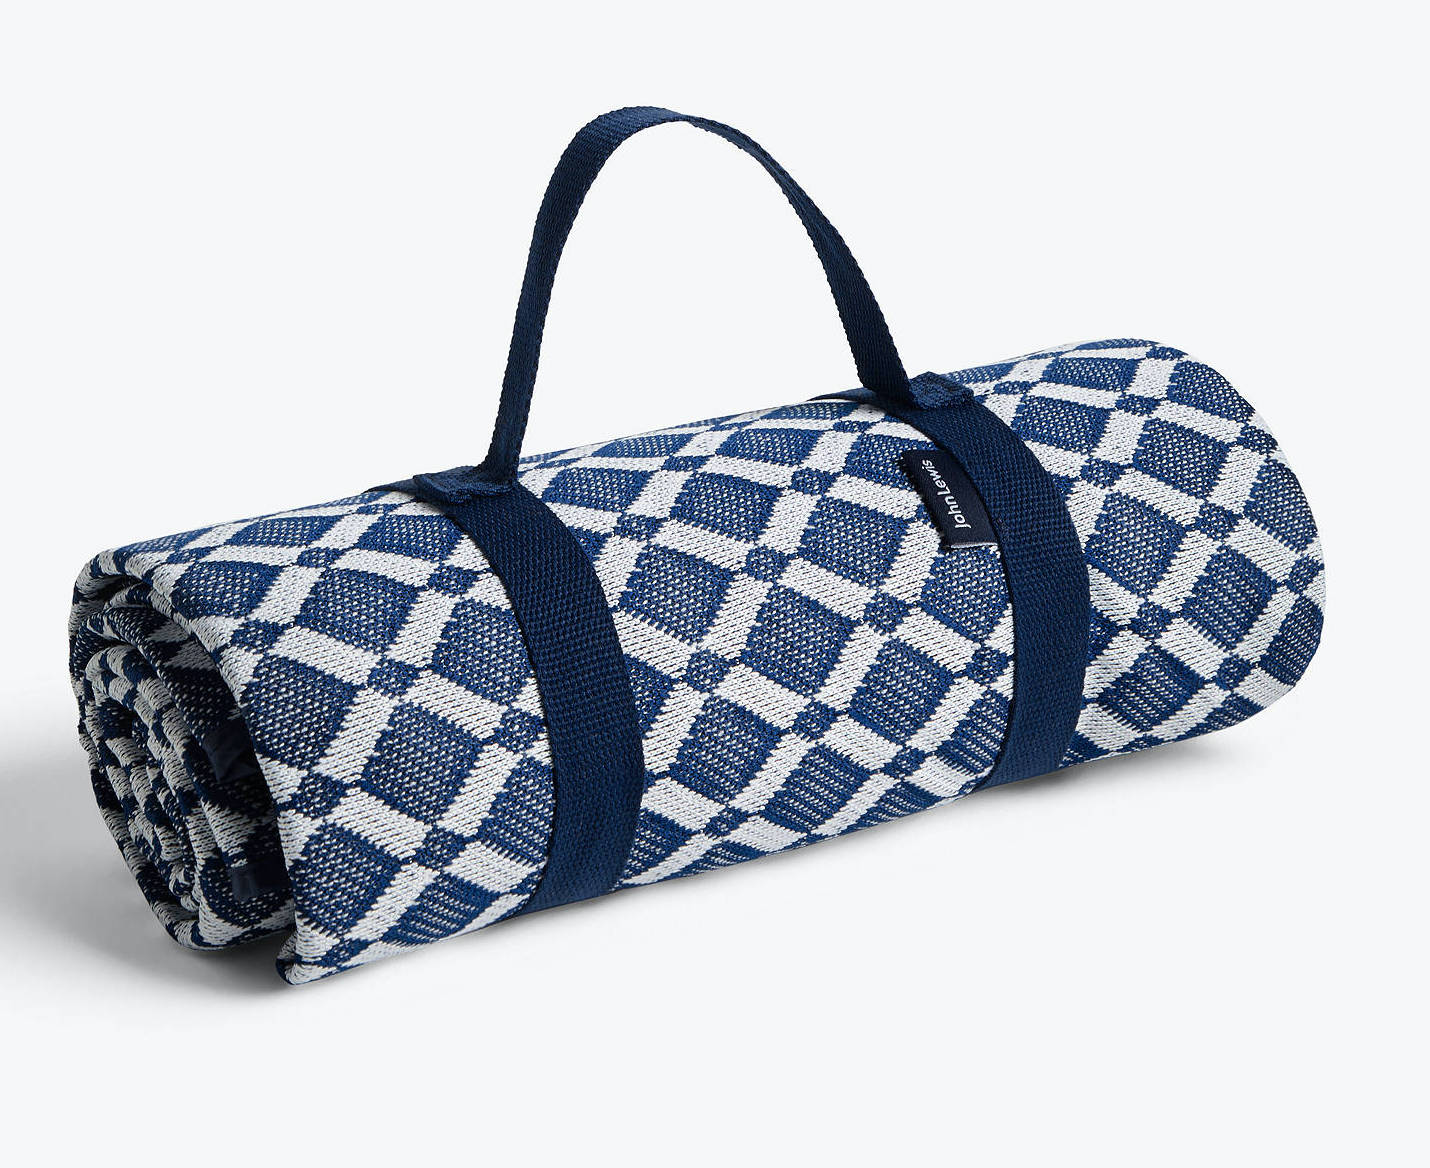 a blue and white picnic blanket to take camping